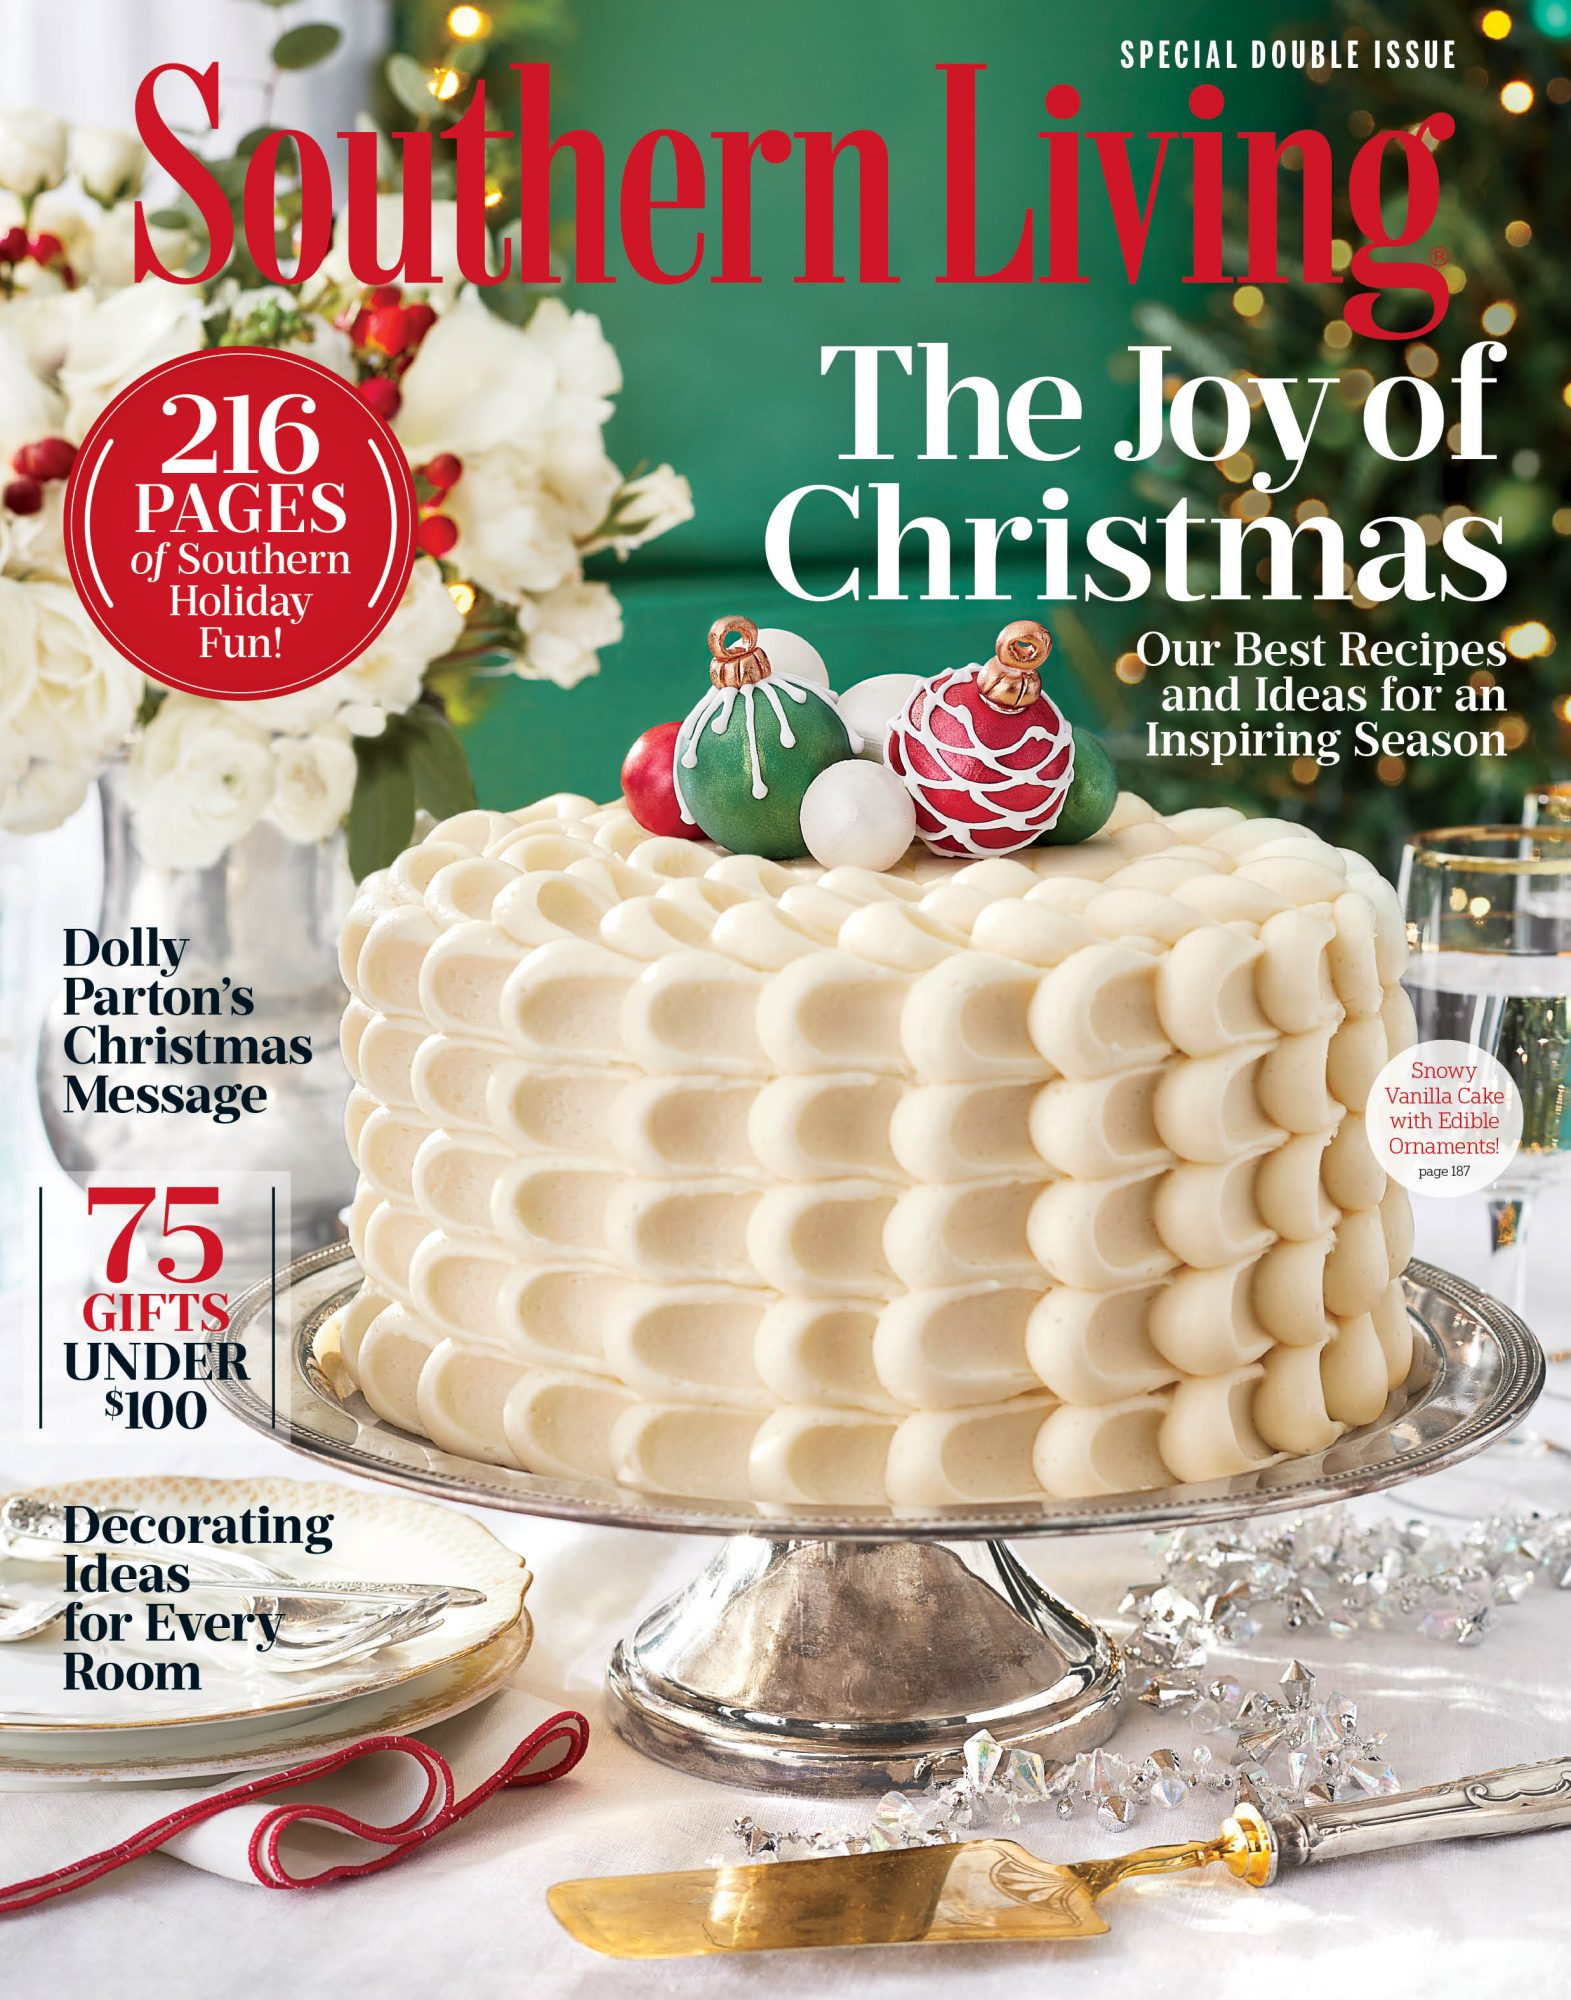 Snowy Vanilla Cake with Edible Ornaments December 2017 Cover